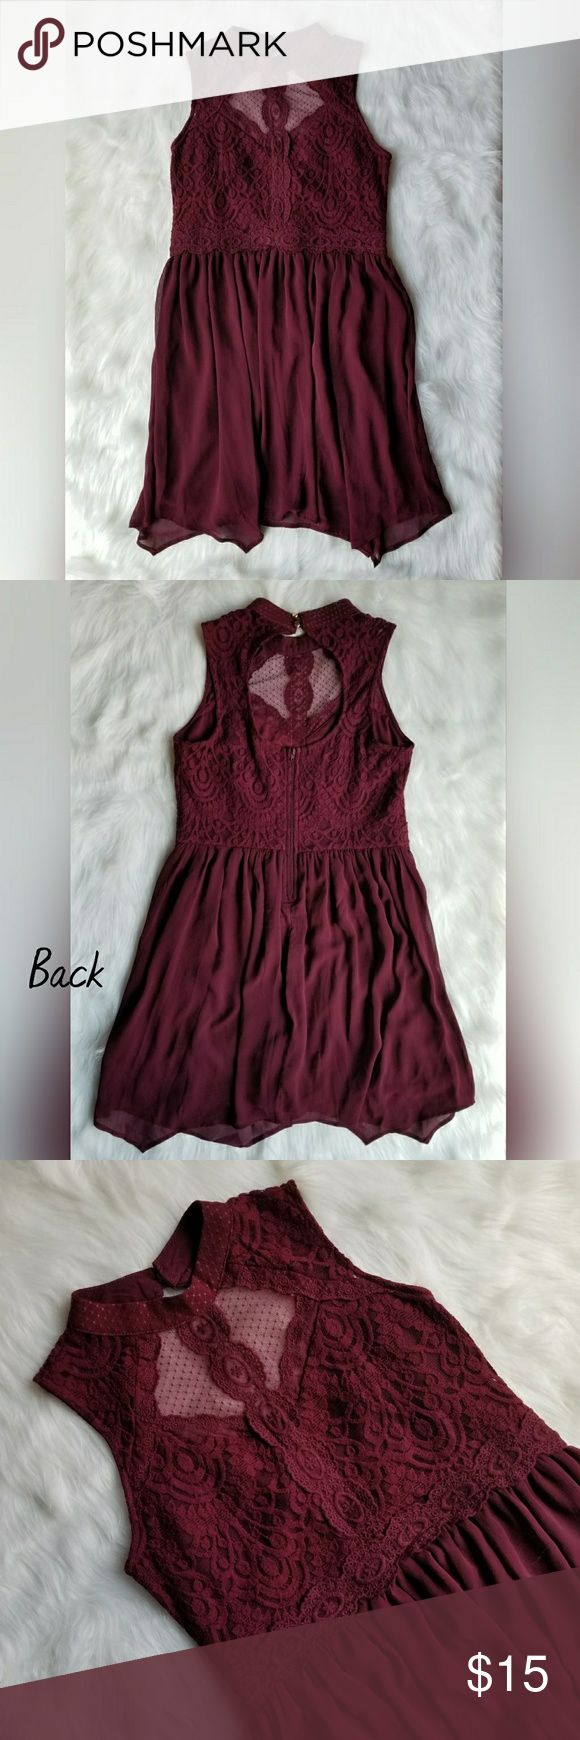 Xhilaration Maroon Lace Dress 🌟Excellent unworn condition with tags 🌟Beautiful lace detailing 🌟Open back 🌟Rose gold buttons at back neck 🌟Smoke free home Xhilaration Dresses Mini